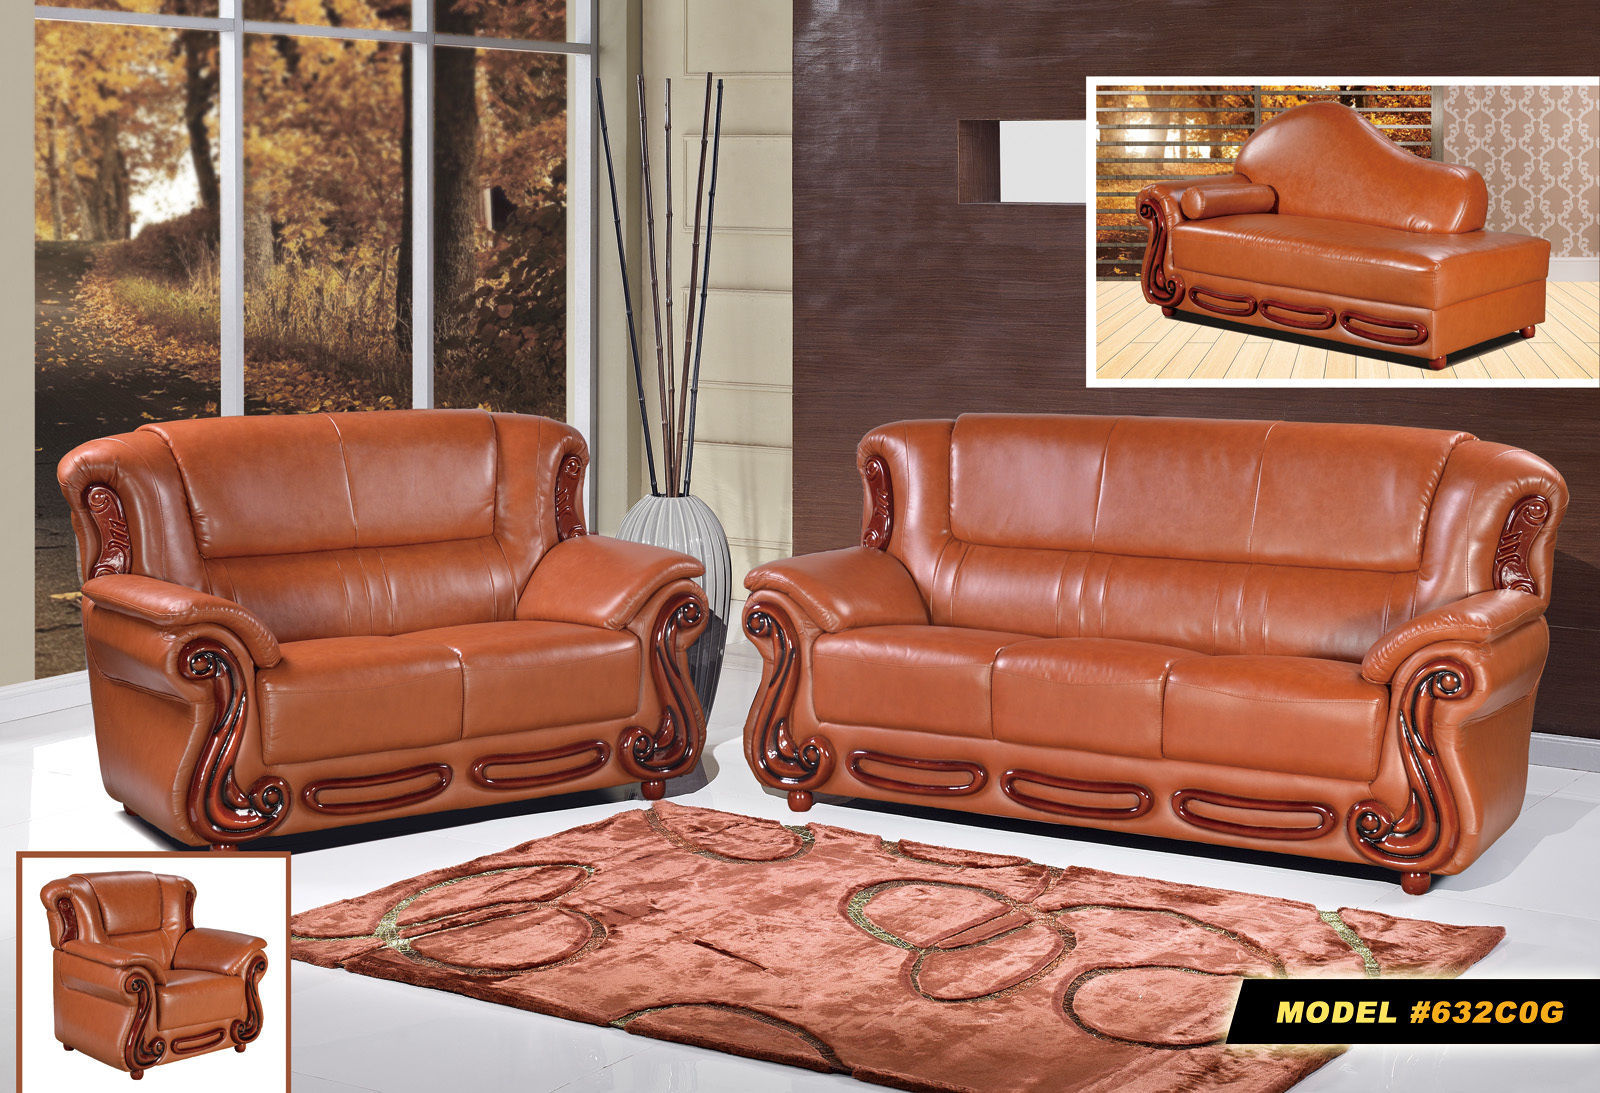 Meridian 632 Bonded Leather Living Room Sofa Rich Cherry Traditional Style